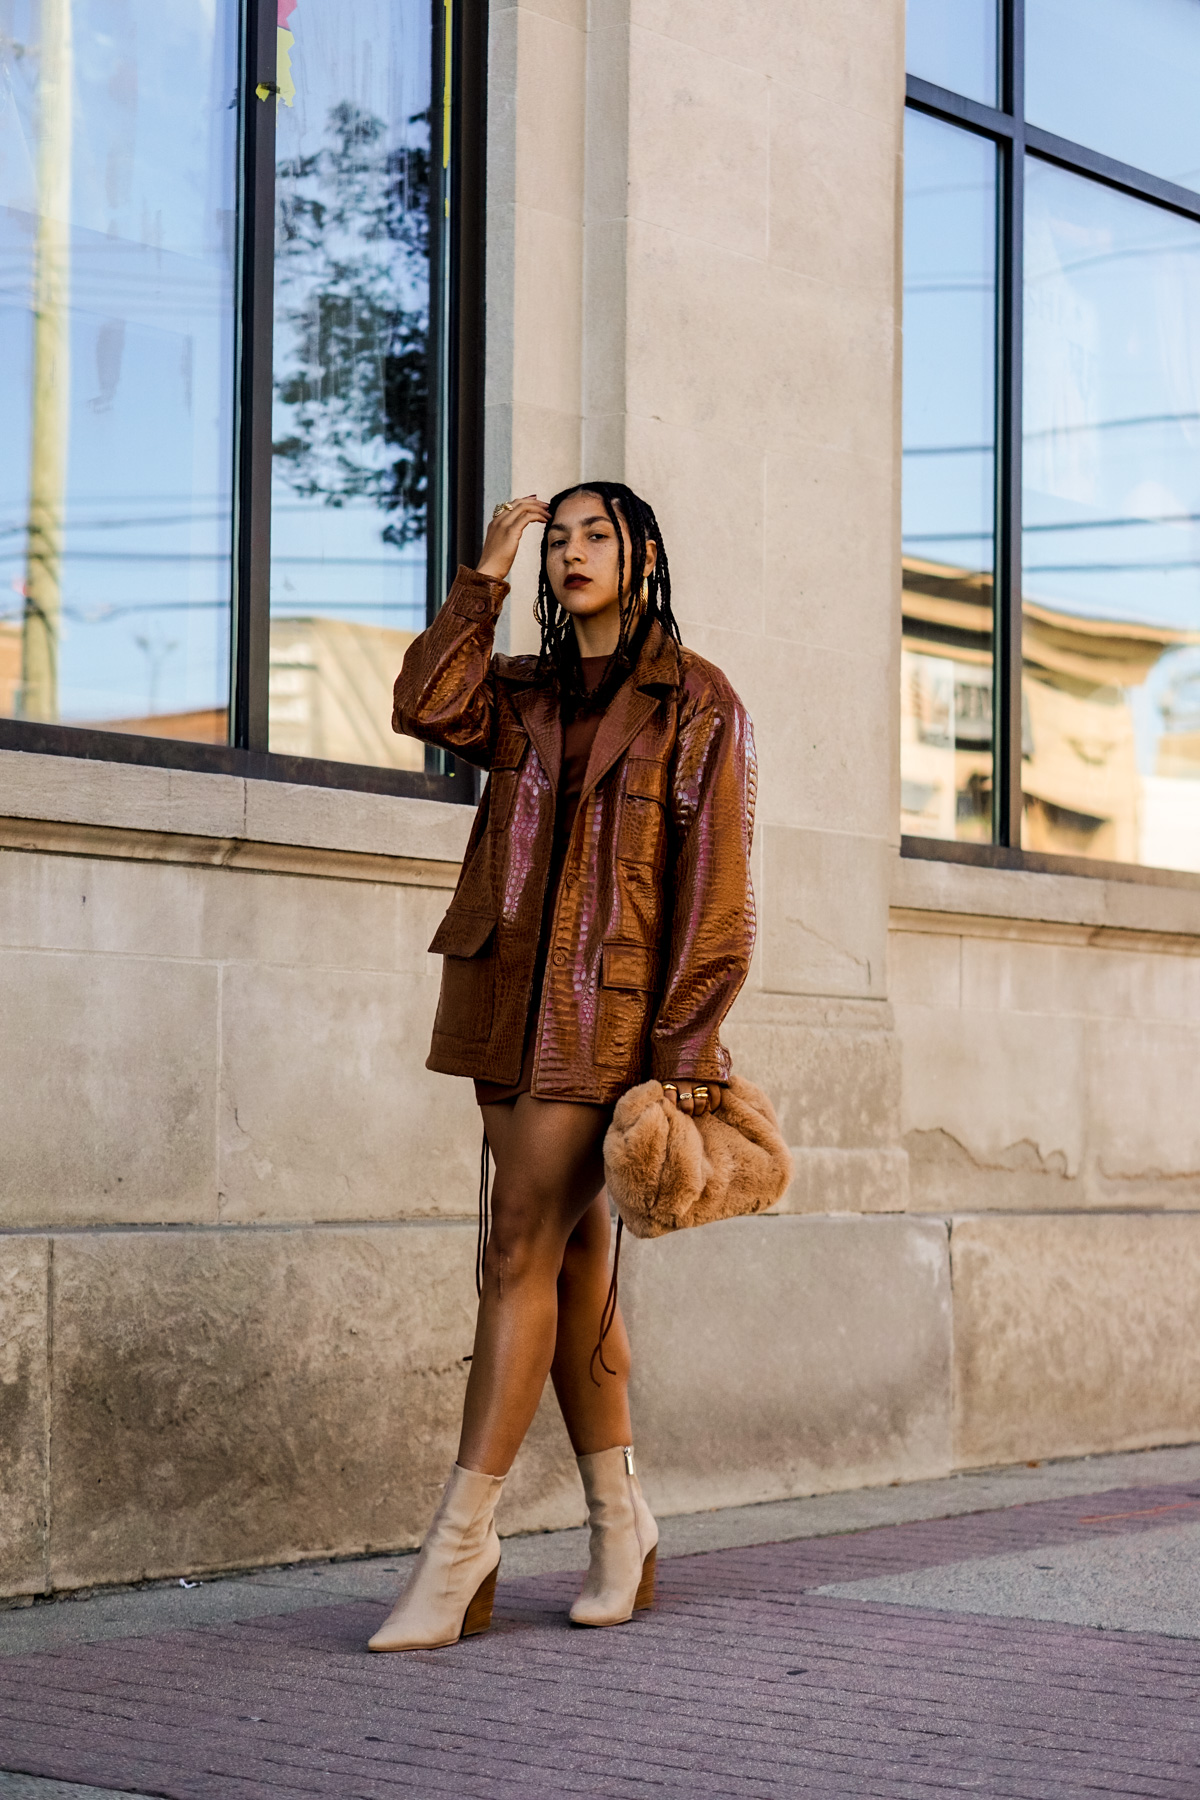 brown monochrome outfit idea for women, fall outfit ideas for women, black fashion bloggers inspiration, all brown outfit idea black girl